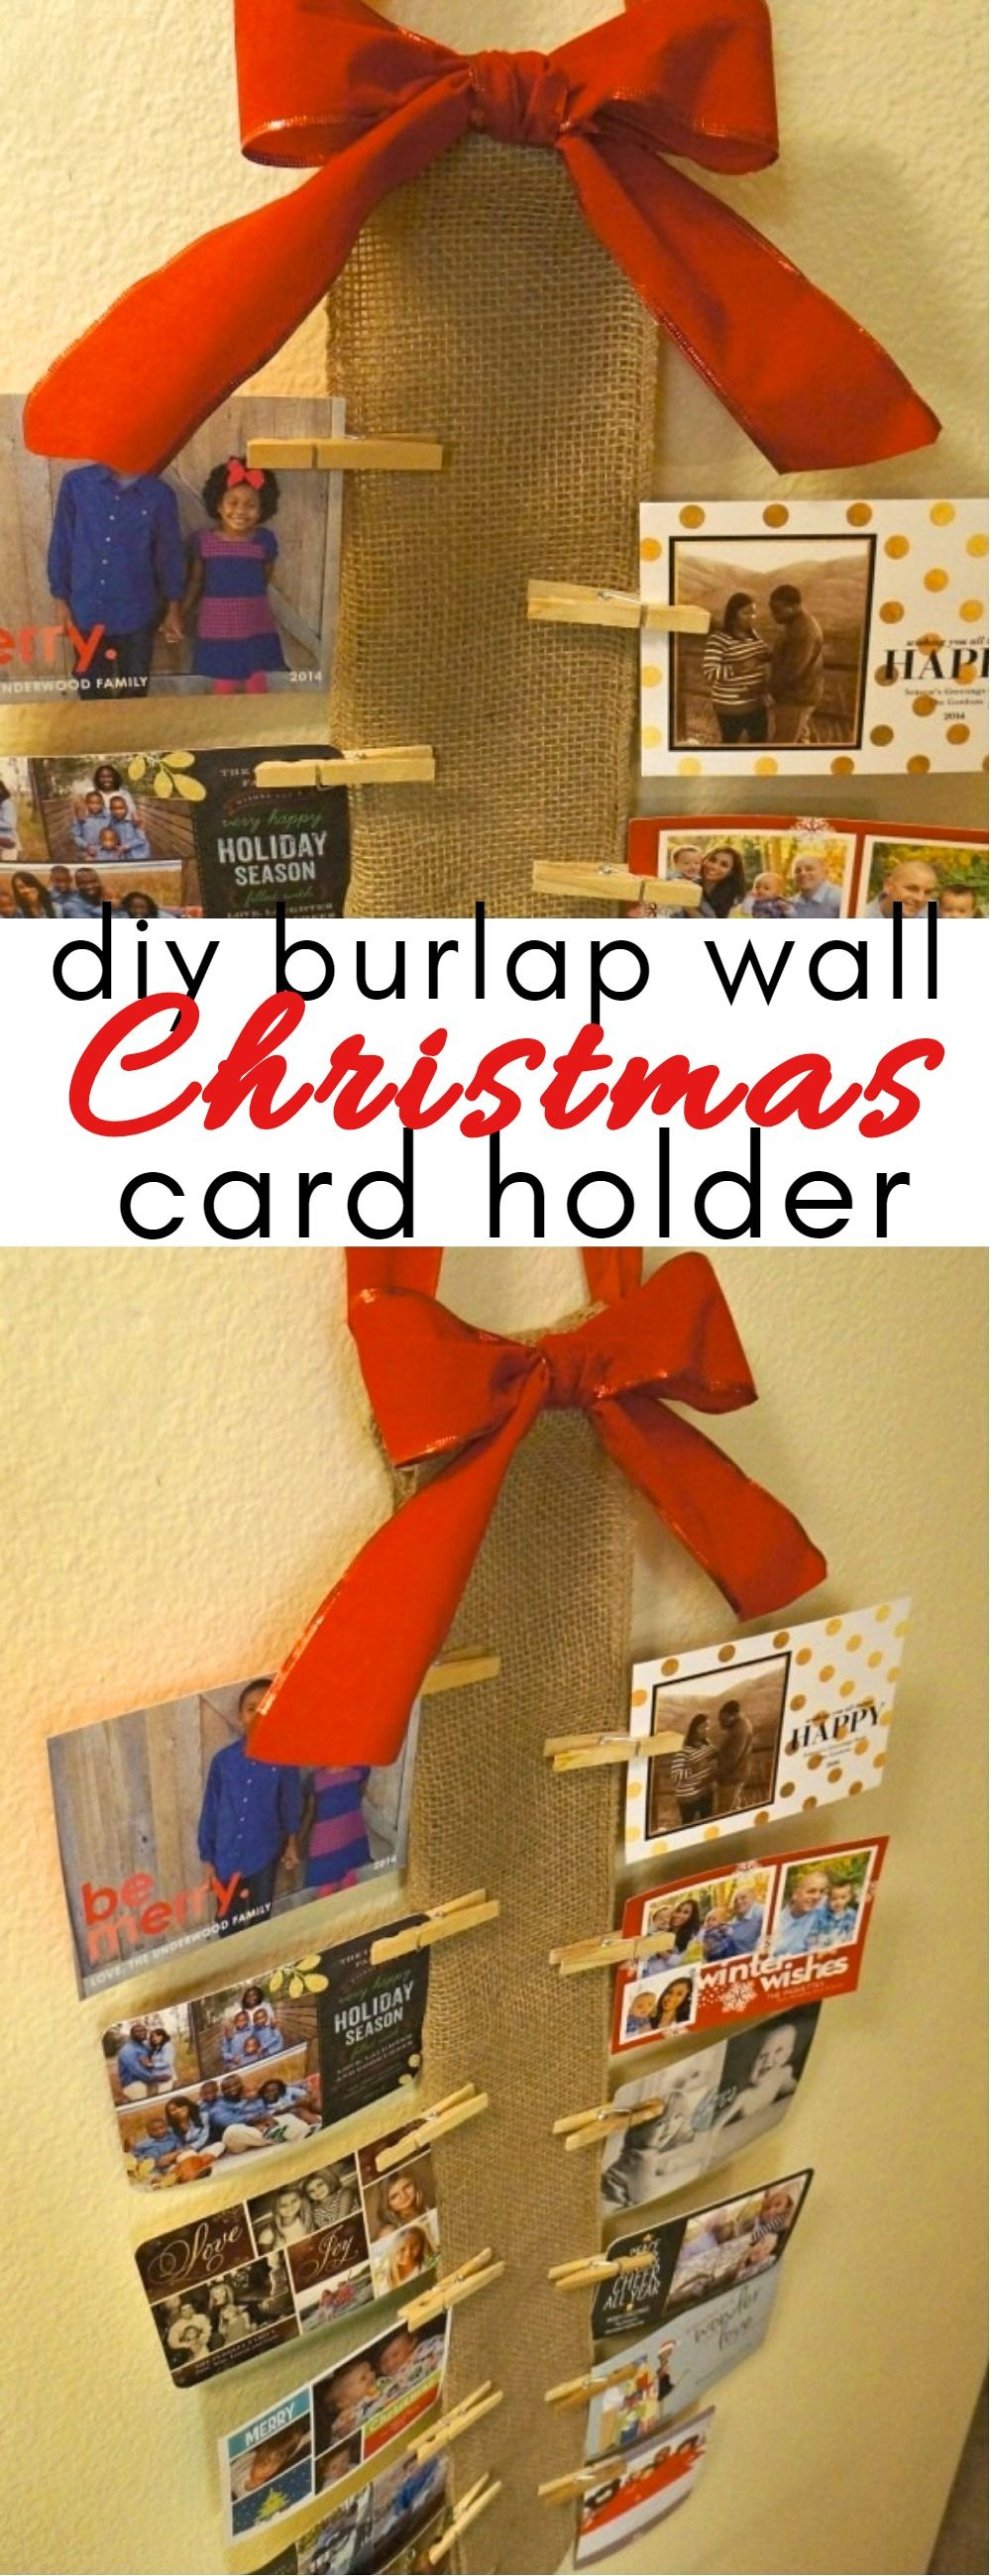 DIY Christmas card holder - Looking for creative holiday card display ideas? Do you live in a small apartment without a mantle? How about displaying them on your wall with this DIY, easy to make burlap wall Christmas card holder!